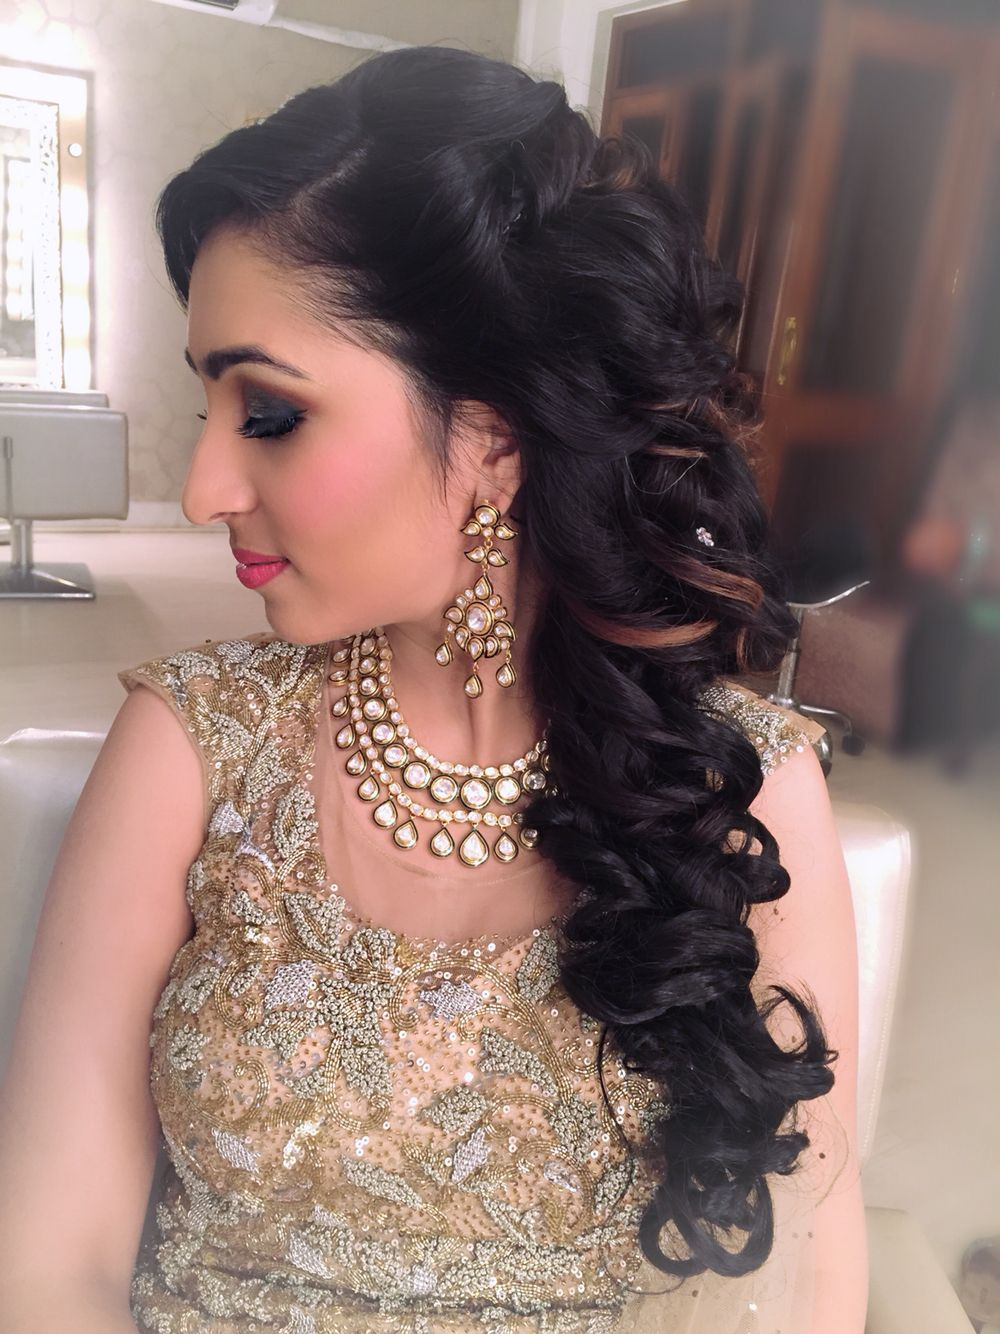 Beautiful Neha S Cocktail Look Hair Artistry By Archana Rautela Braided Hairstyles For Wedding Hair Styles Indian Party Hairstyles